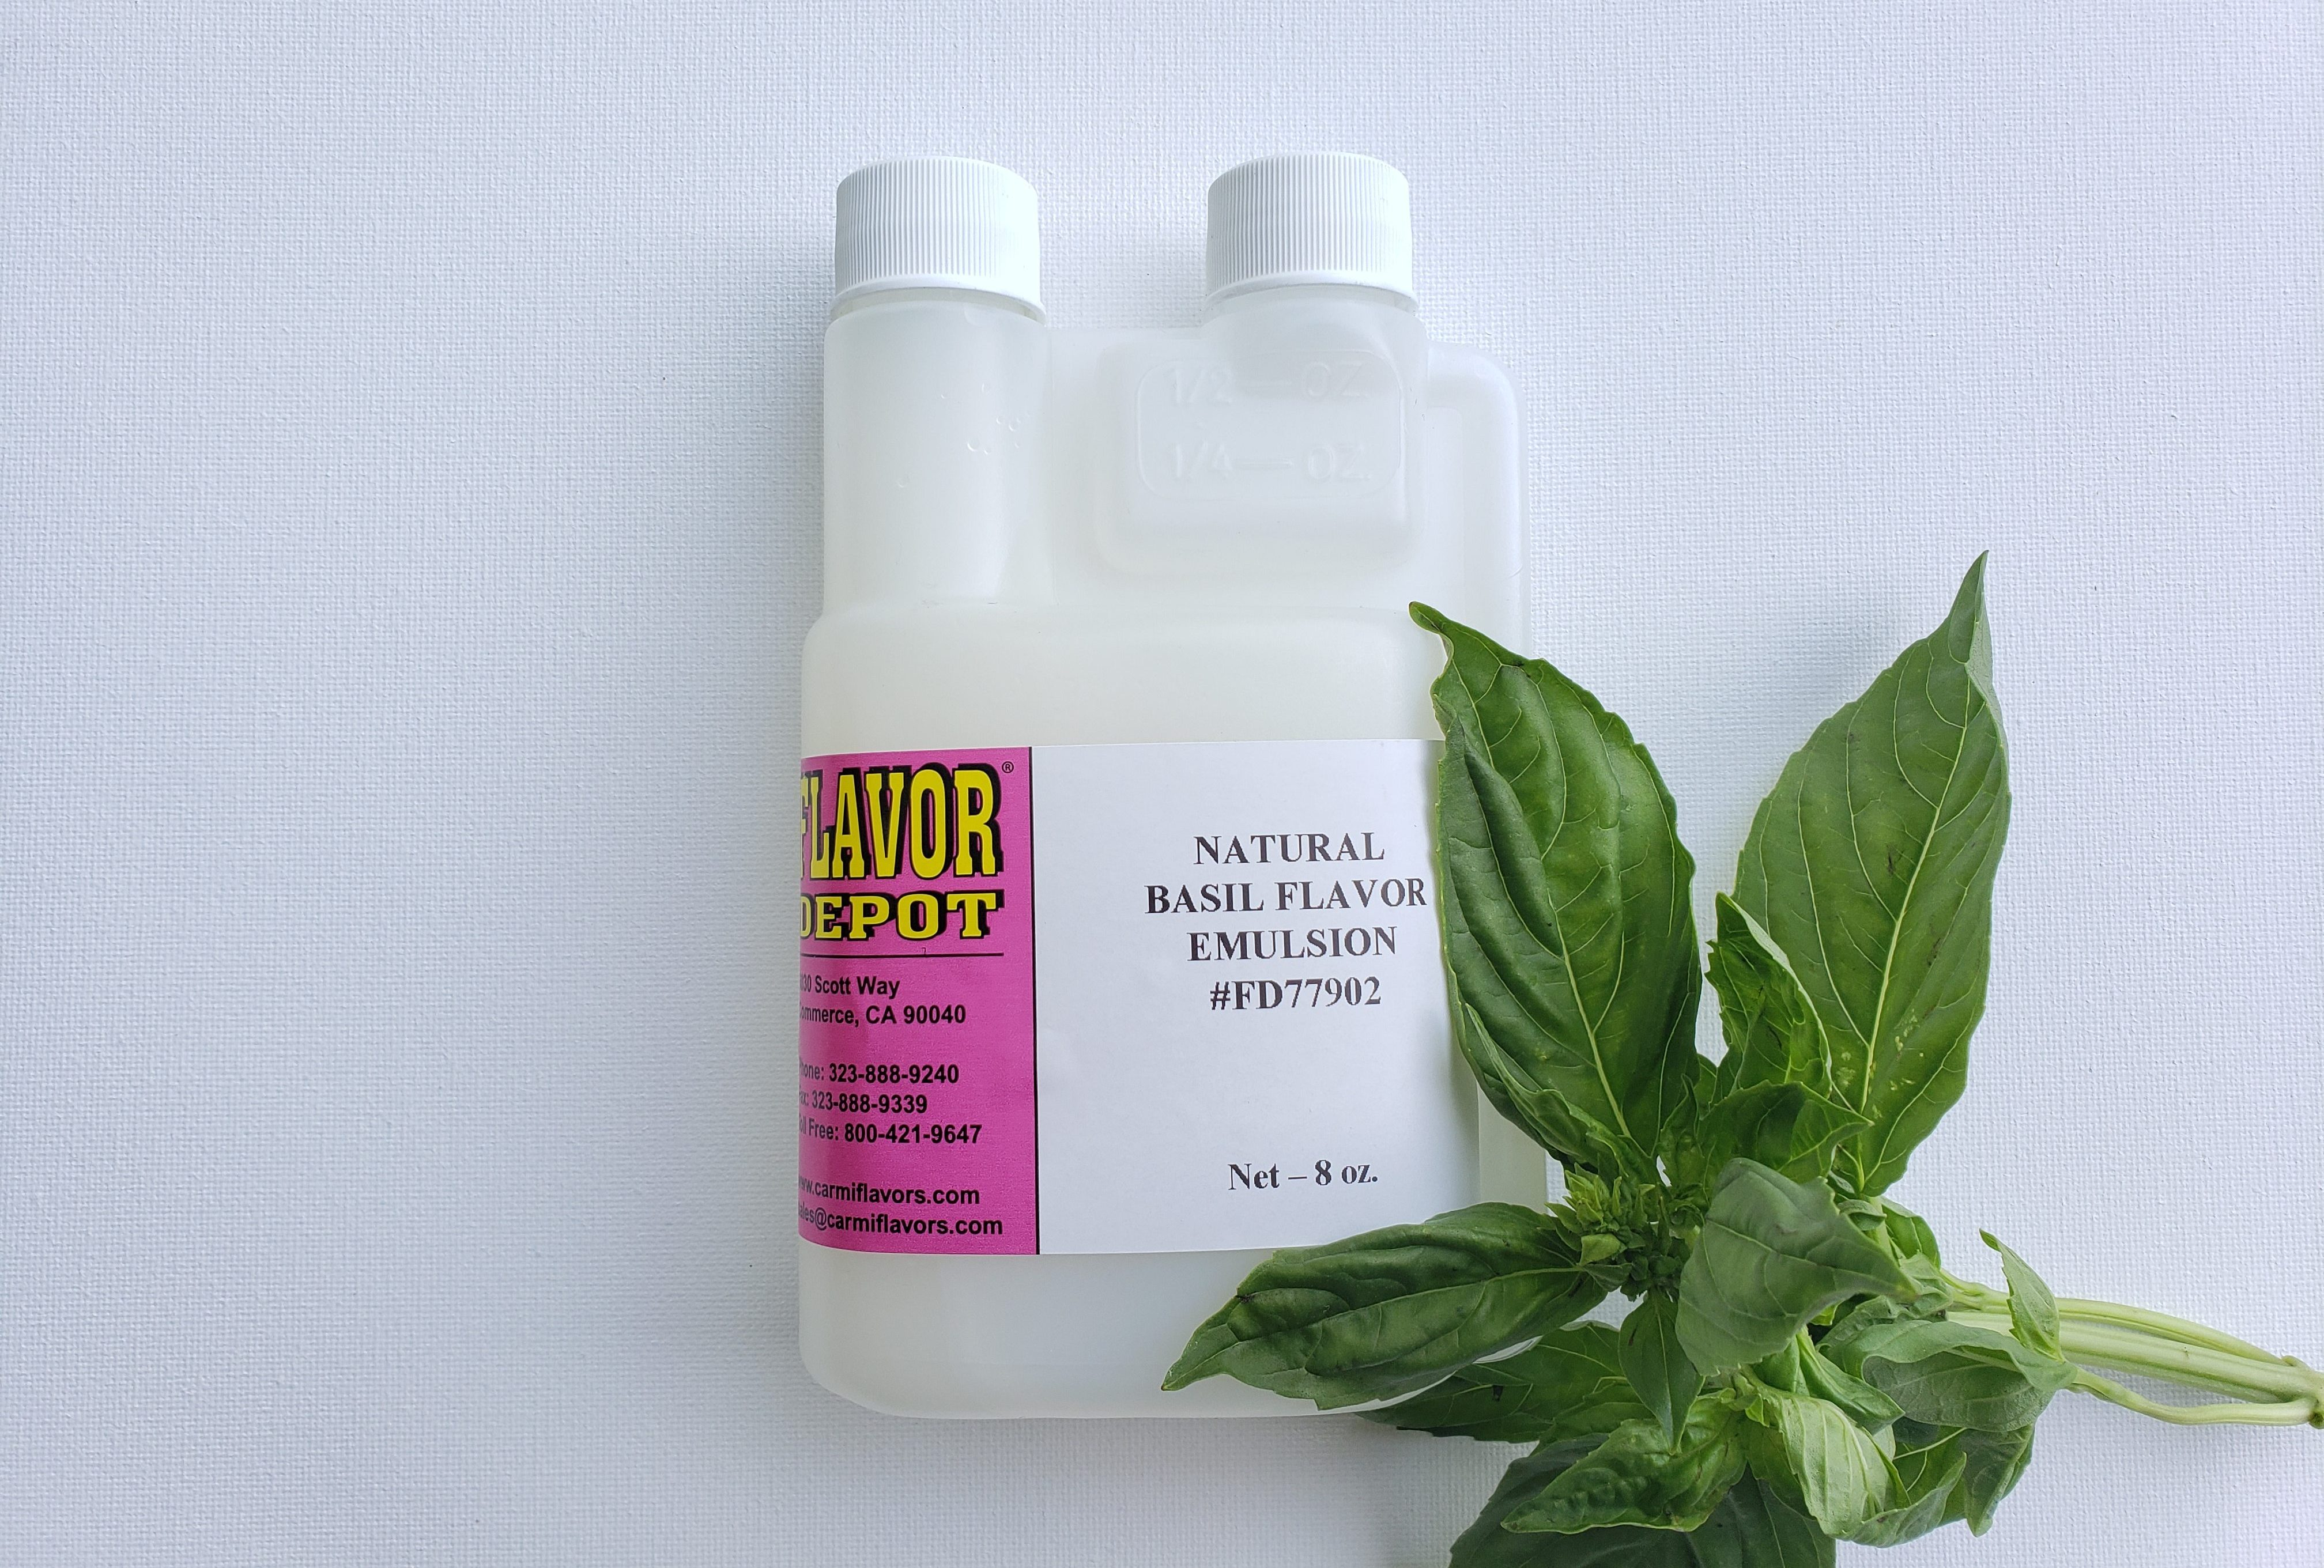 Natural Basil Flavor Emulsion